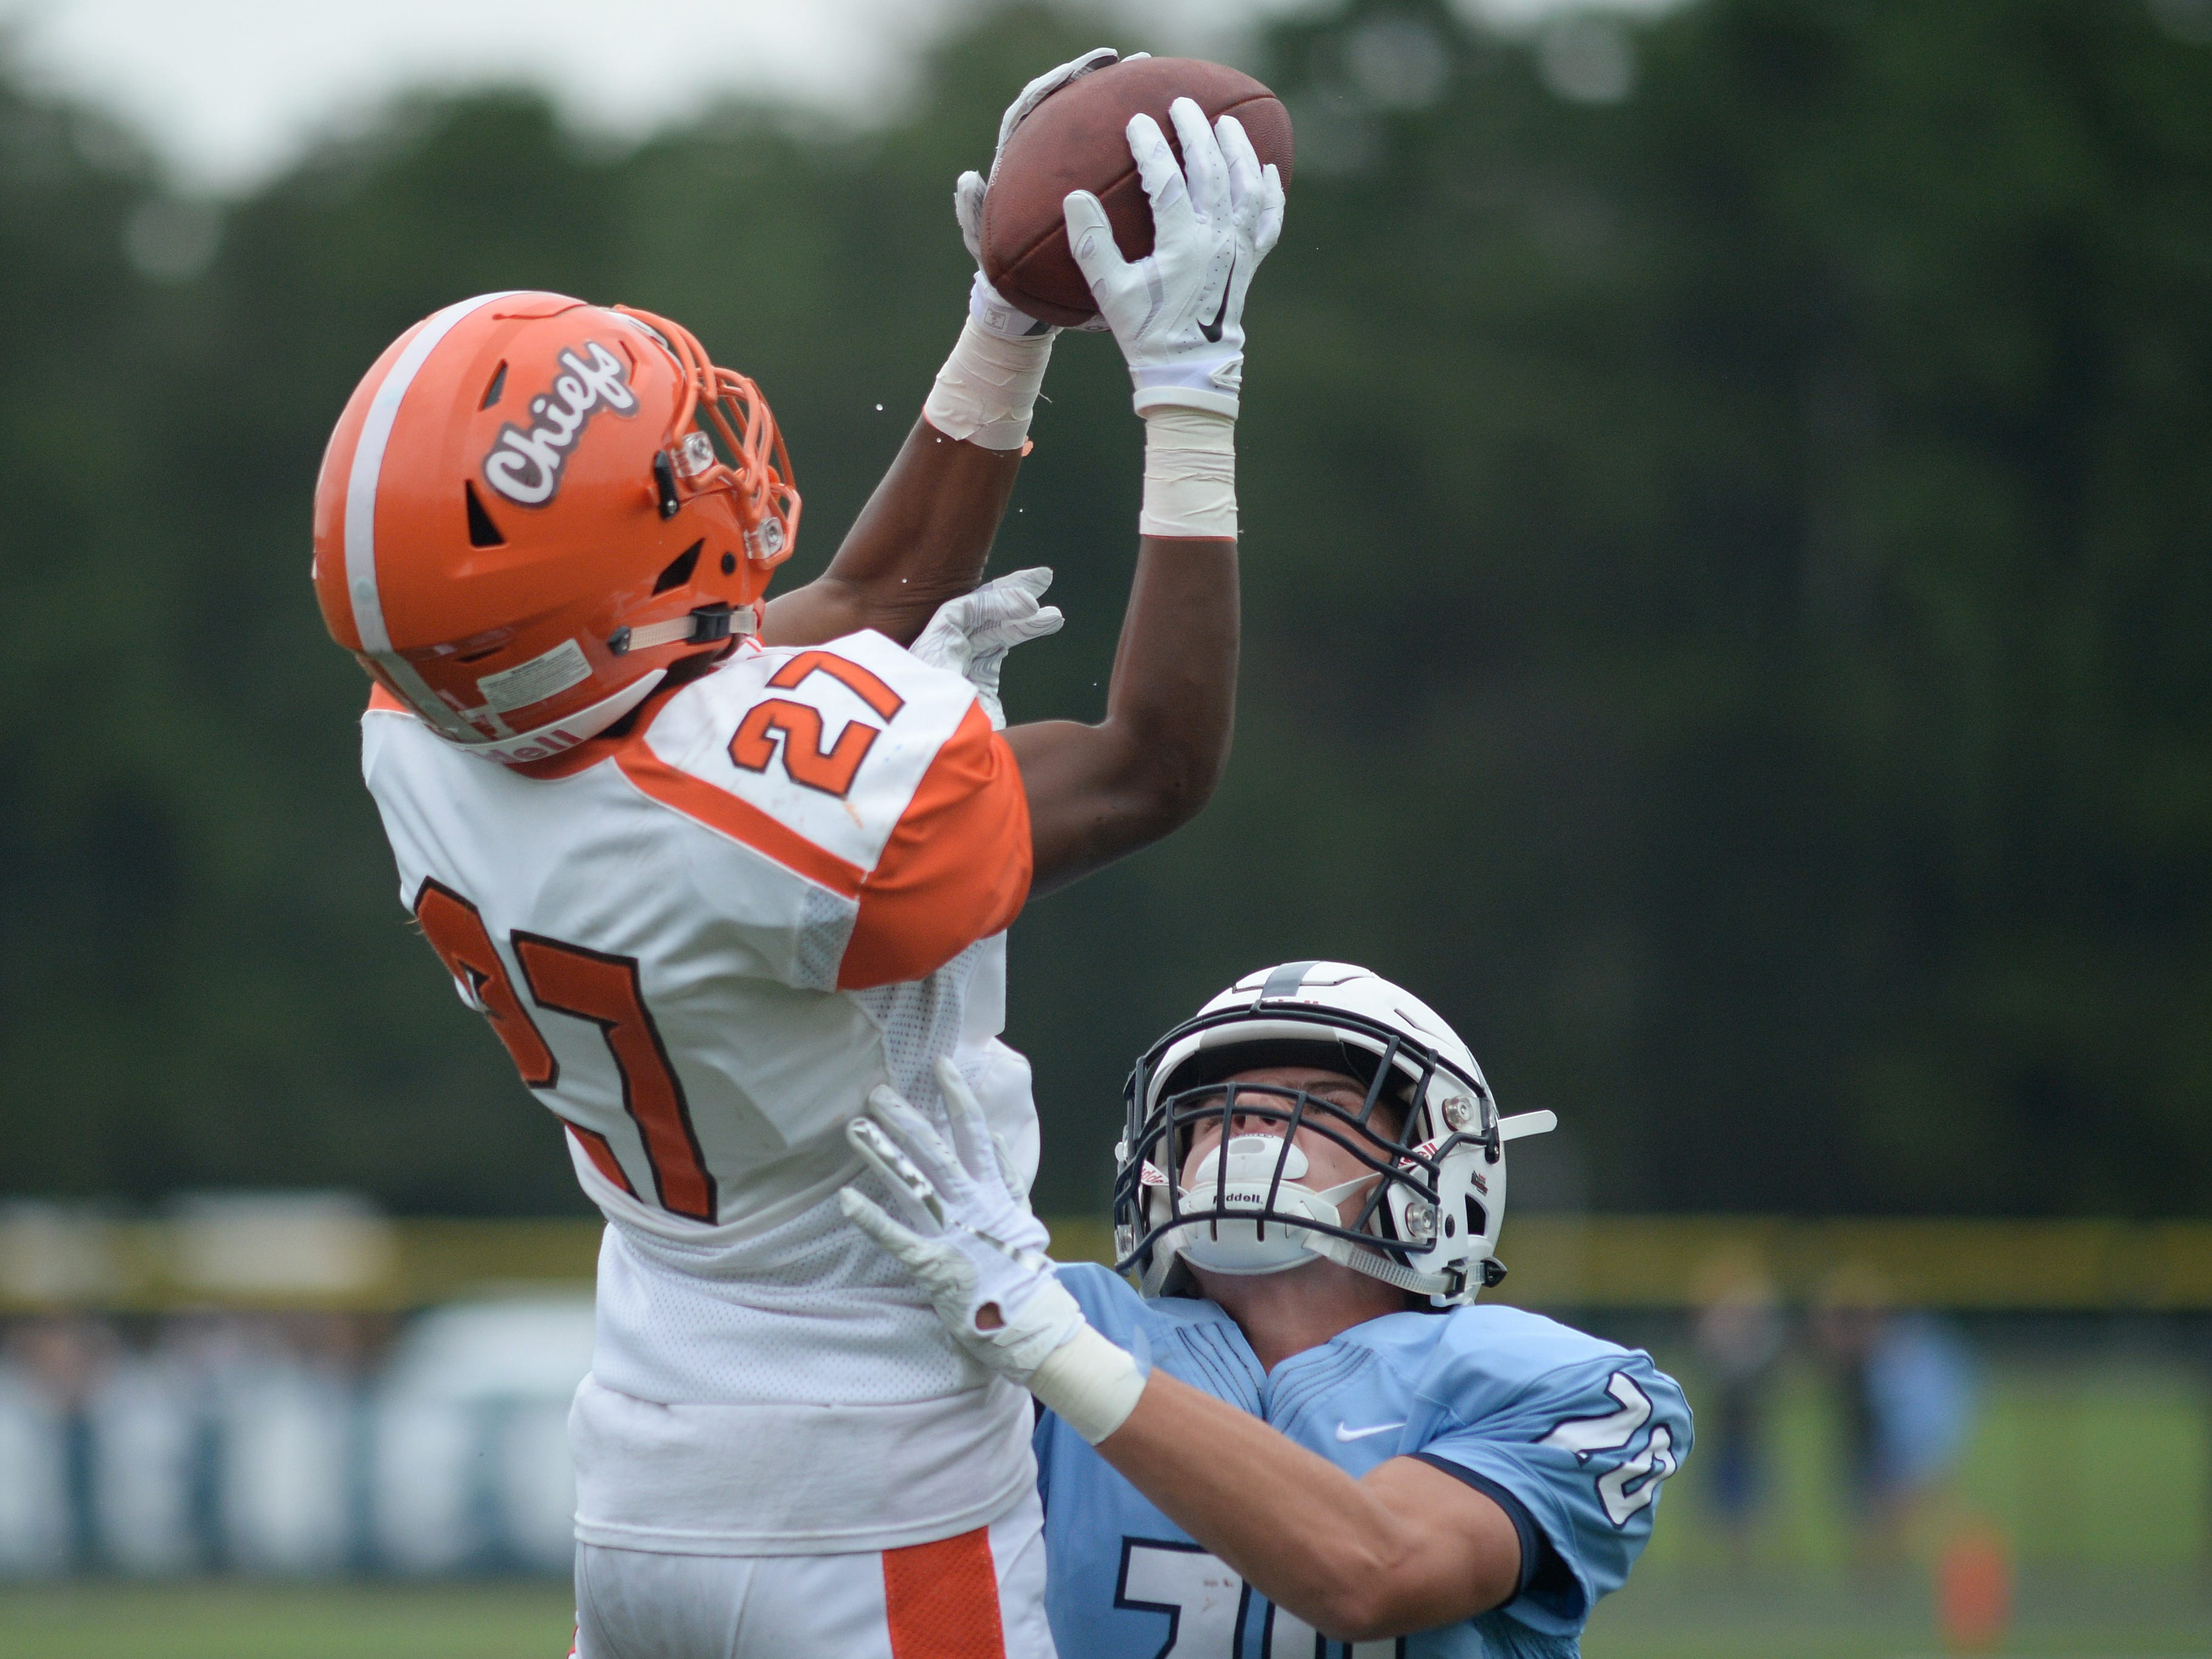 Cherokee's Darnell Hightower catches a touchdown pass with Shawnee's Dom Carbone during Saturday's football game at Shawnee High School,  Sept. 8, 2018.